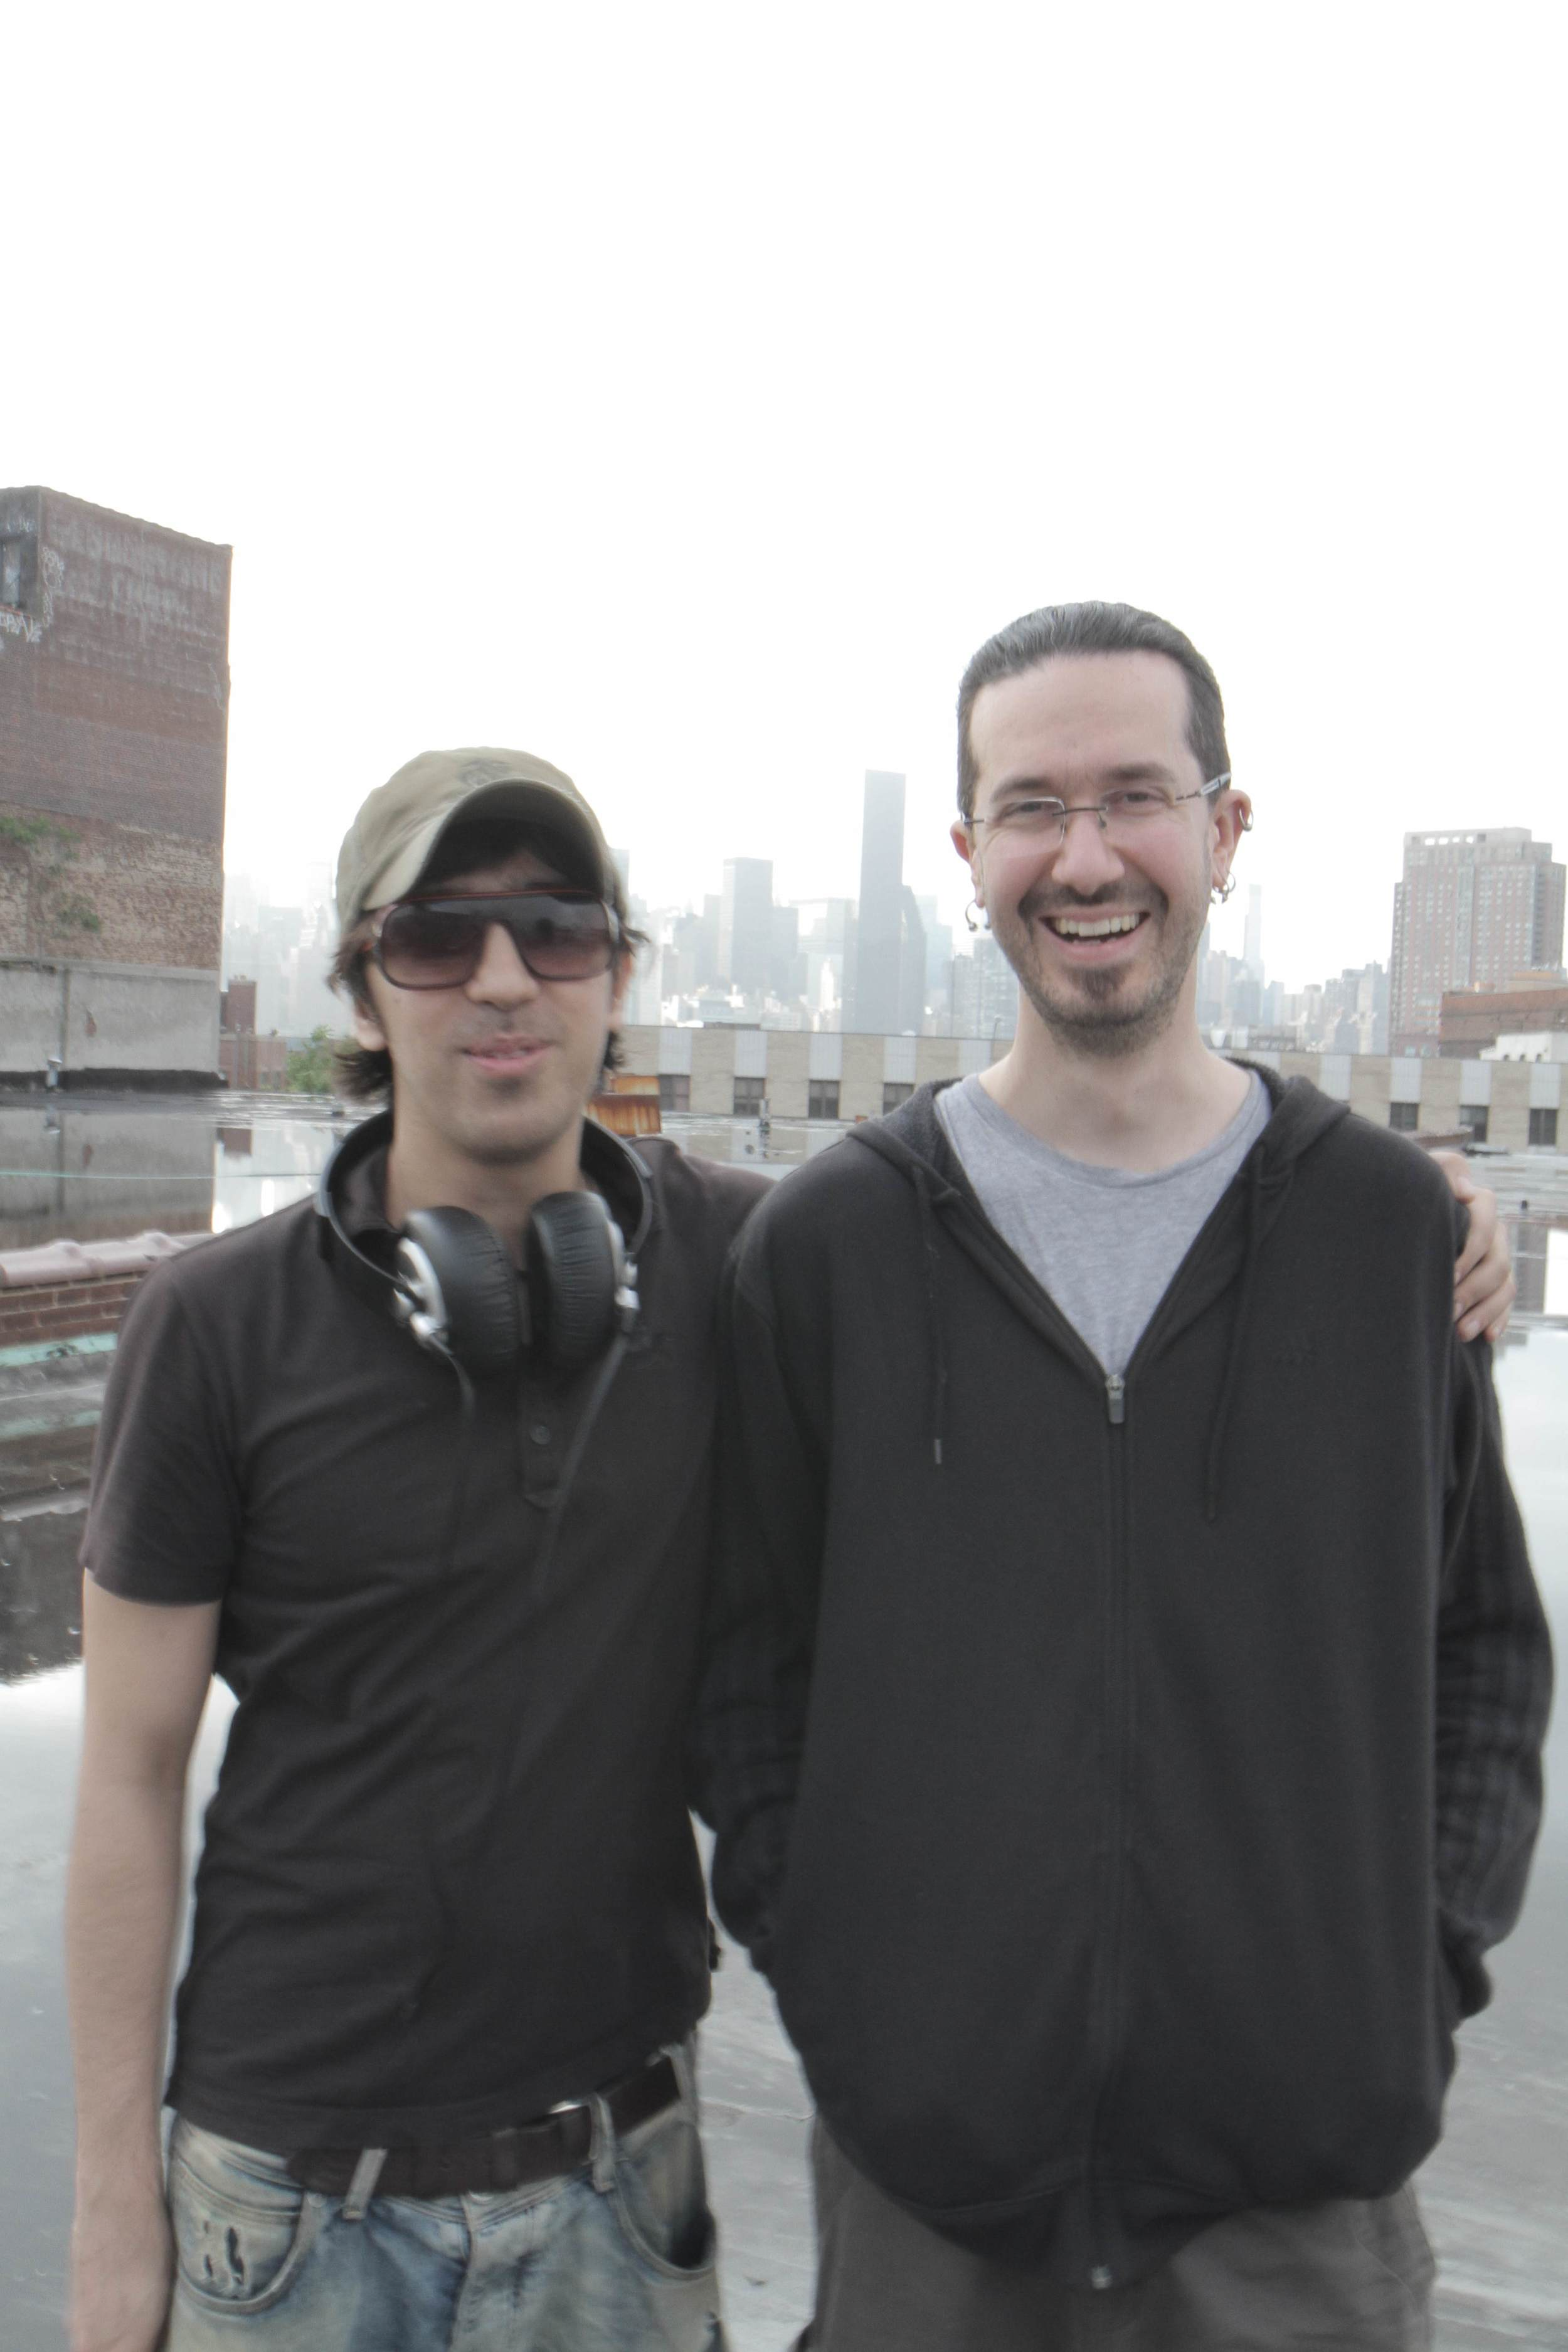 Afternoon on the roof: K and Julien in Greenpoint, Brooklyn.